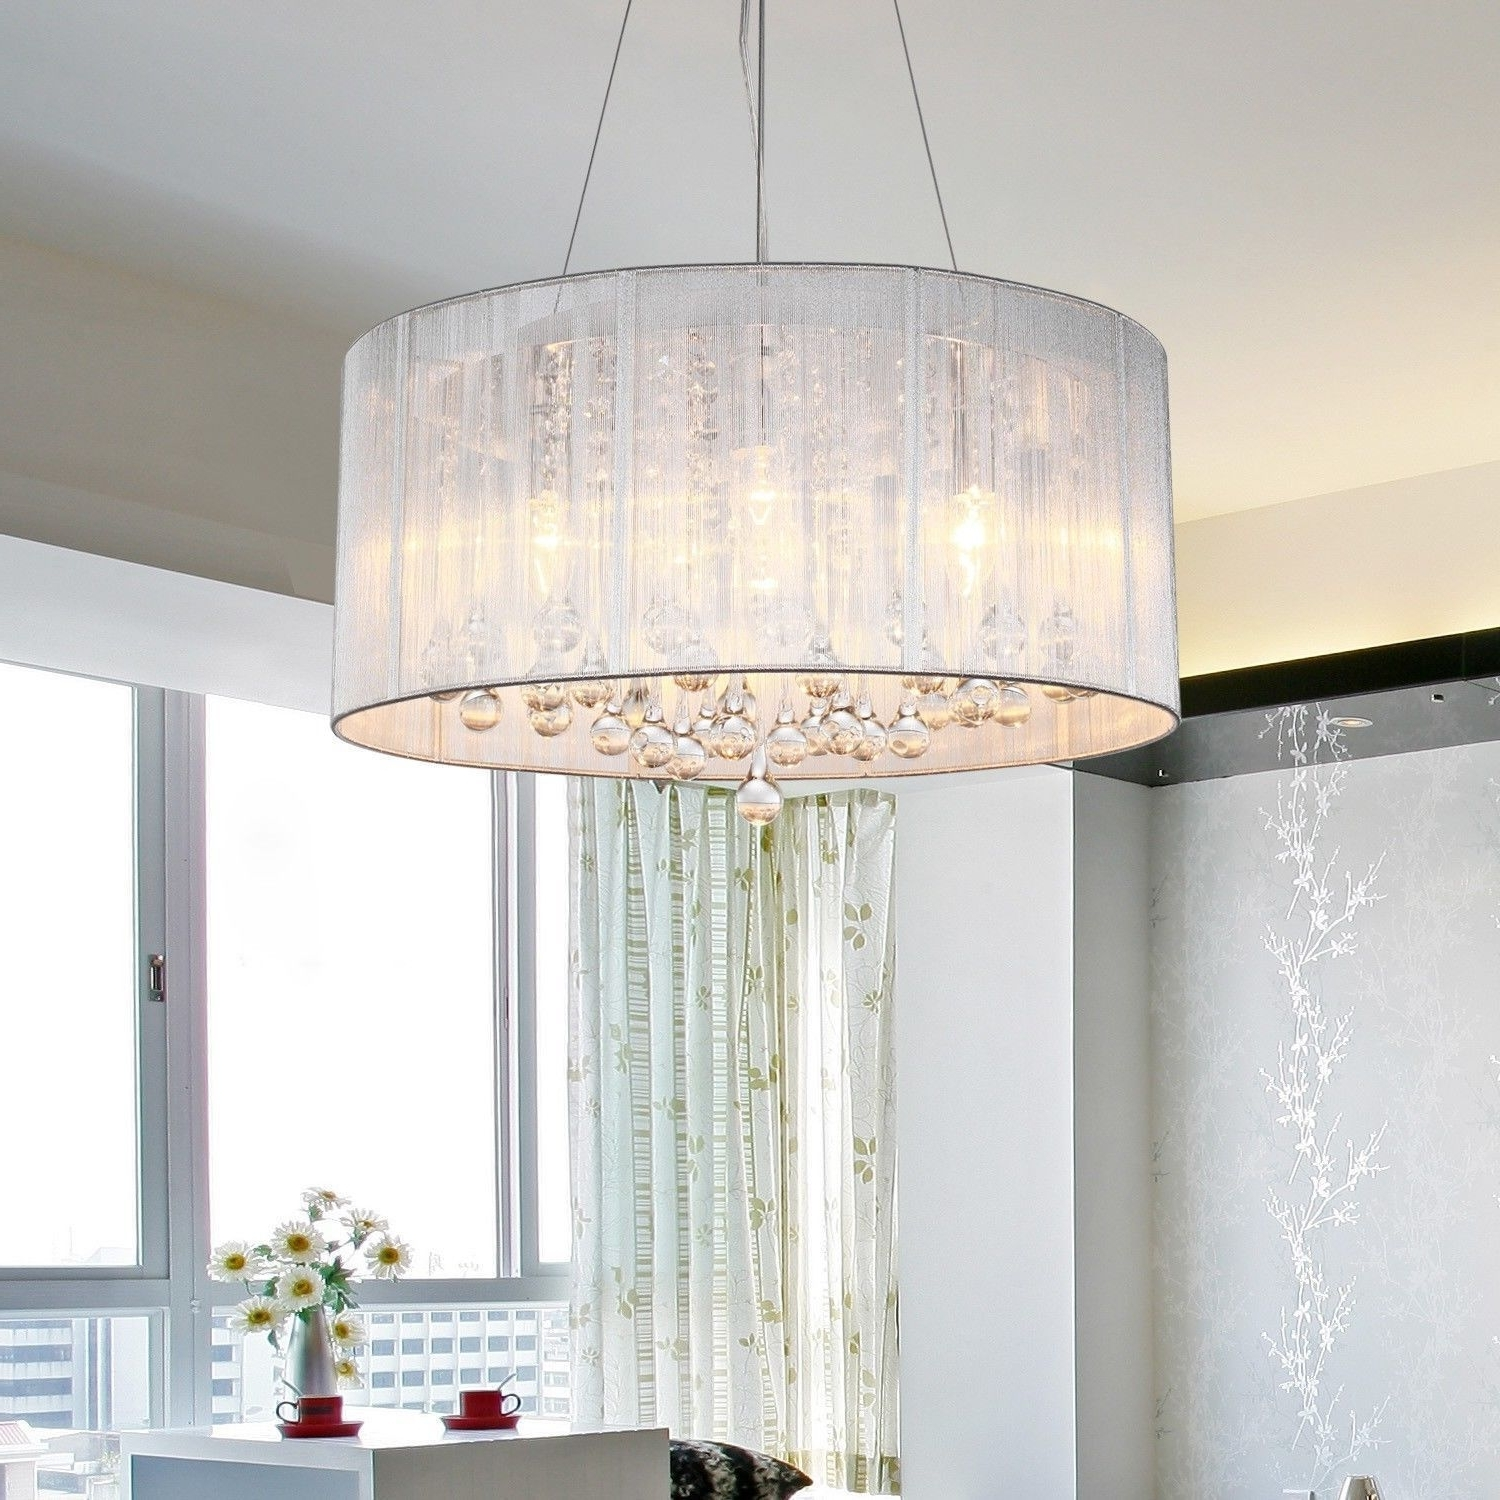 Most Popular Chandelier Lampshades Within Contemporary Chandelier Lamp Shades : Antique Contemporary Lighting (View 5 of 15)